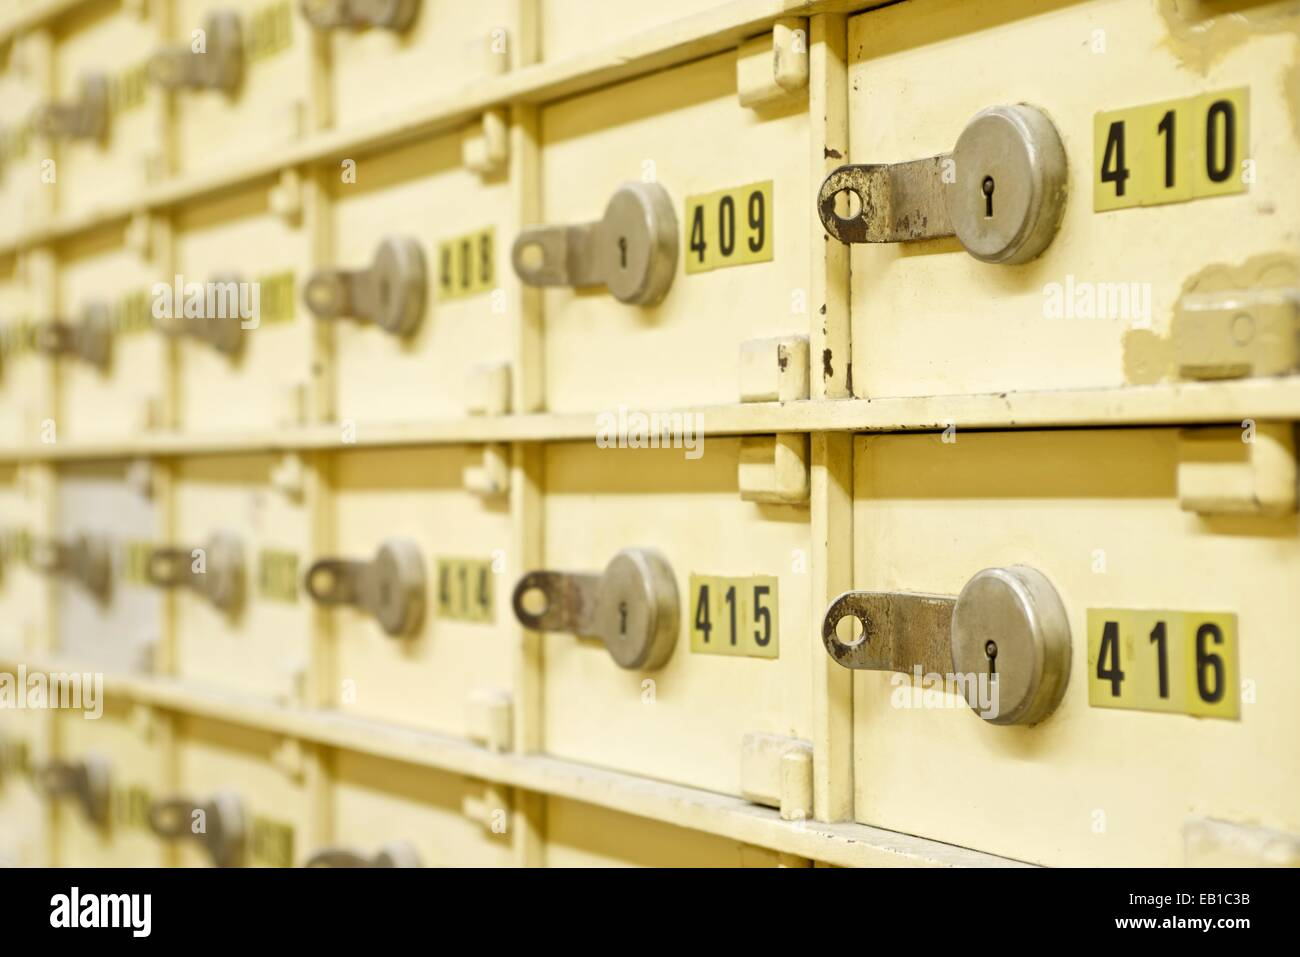 Closeup of a group of cells in an old safe bank. - Stock Image